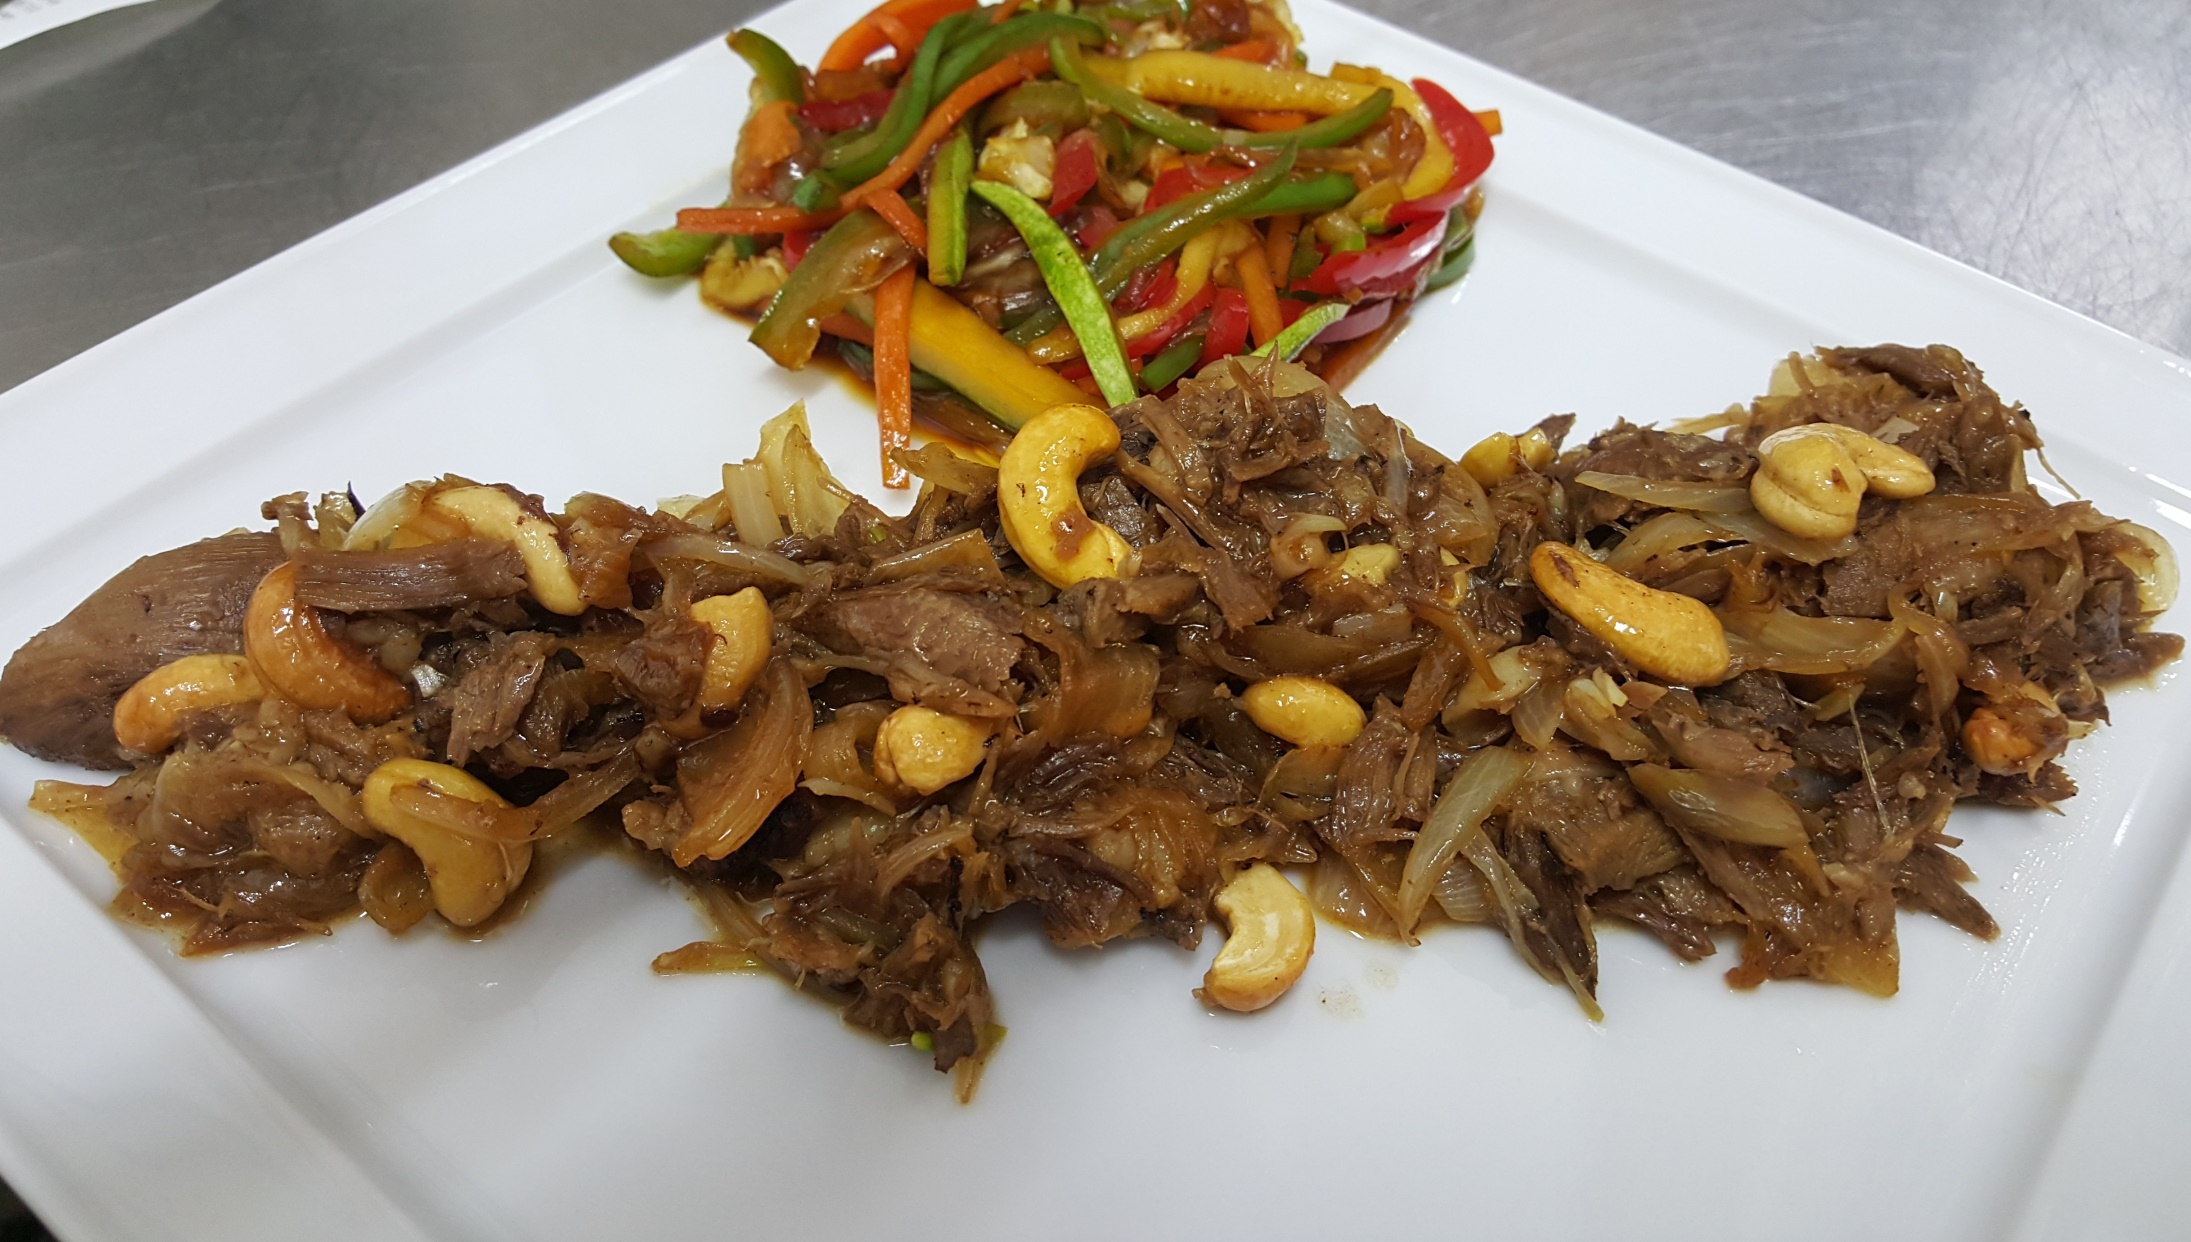 CASHEW FRIED DUCK - juicy duck thigh meat, prepared with onion, garlic and soya sauce